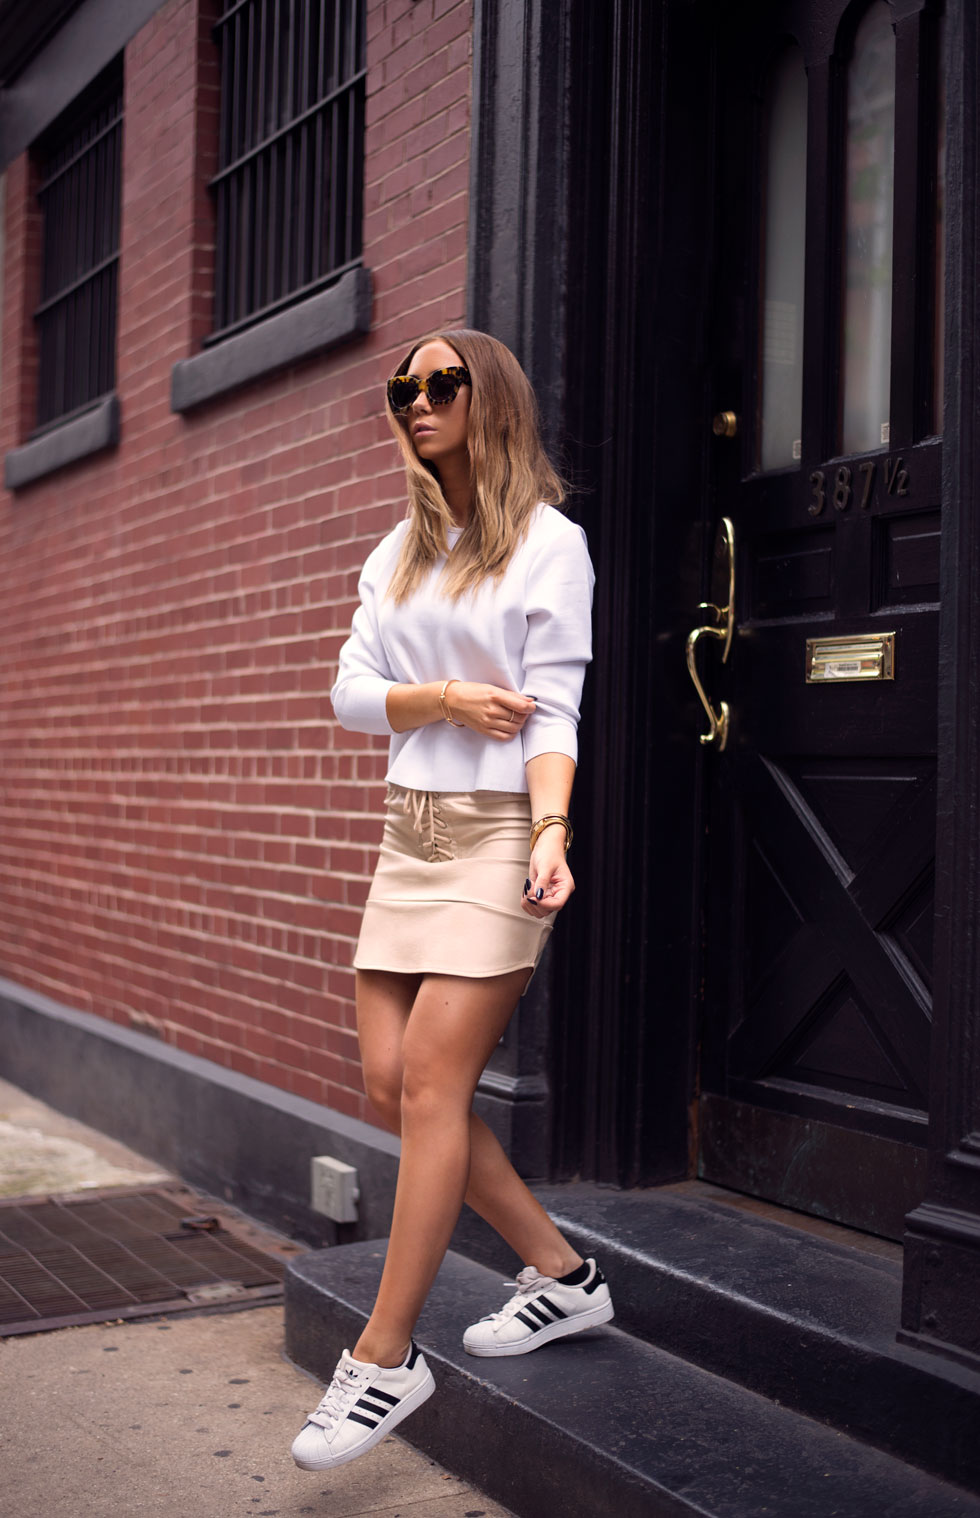 Lisa Olsson is wearing a white top from BikBok, nude skirt from Minusey, shoes from Adidas and sunglasses from Karen Walker